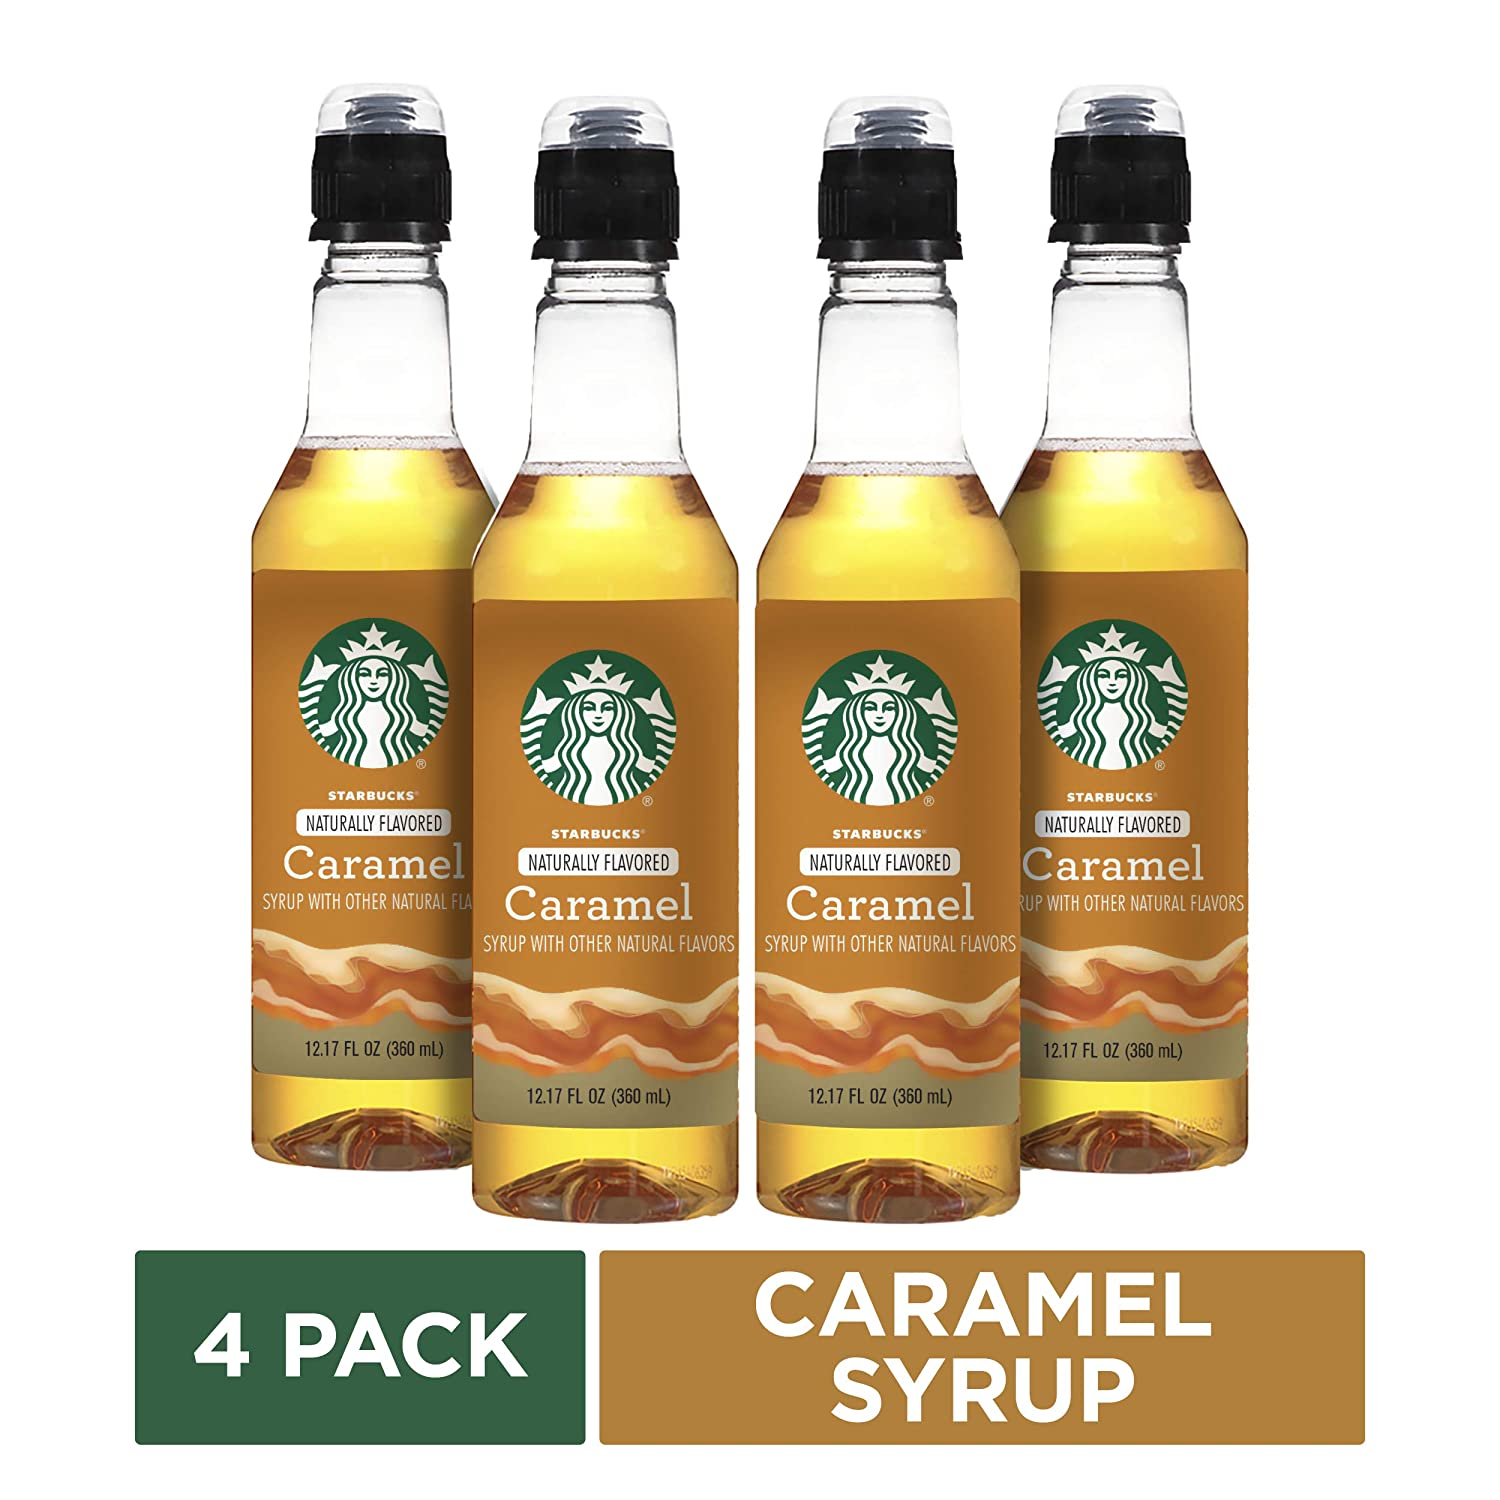 Starbucks Naturally Flavored Caramel Coffee Syrup 4 Bottles Of 12 7 Fl Oz 360 Ml